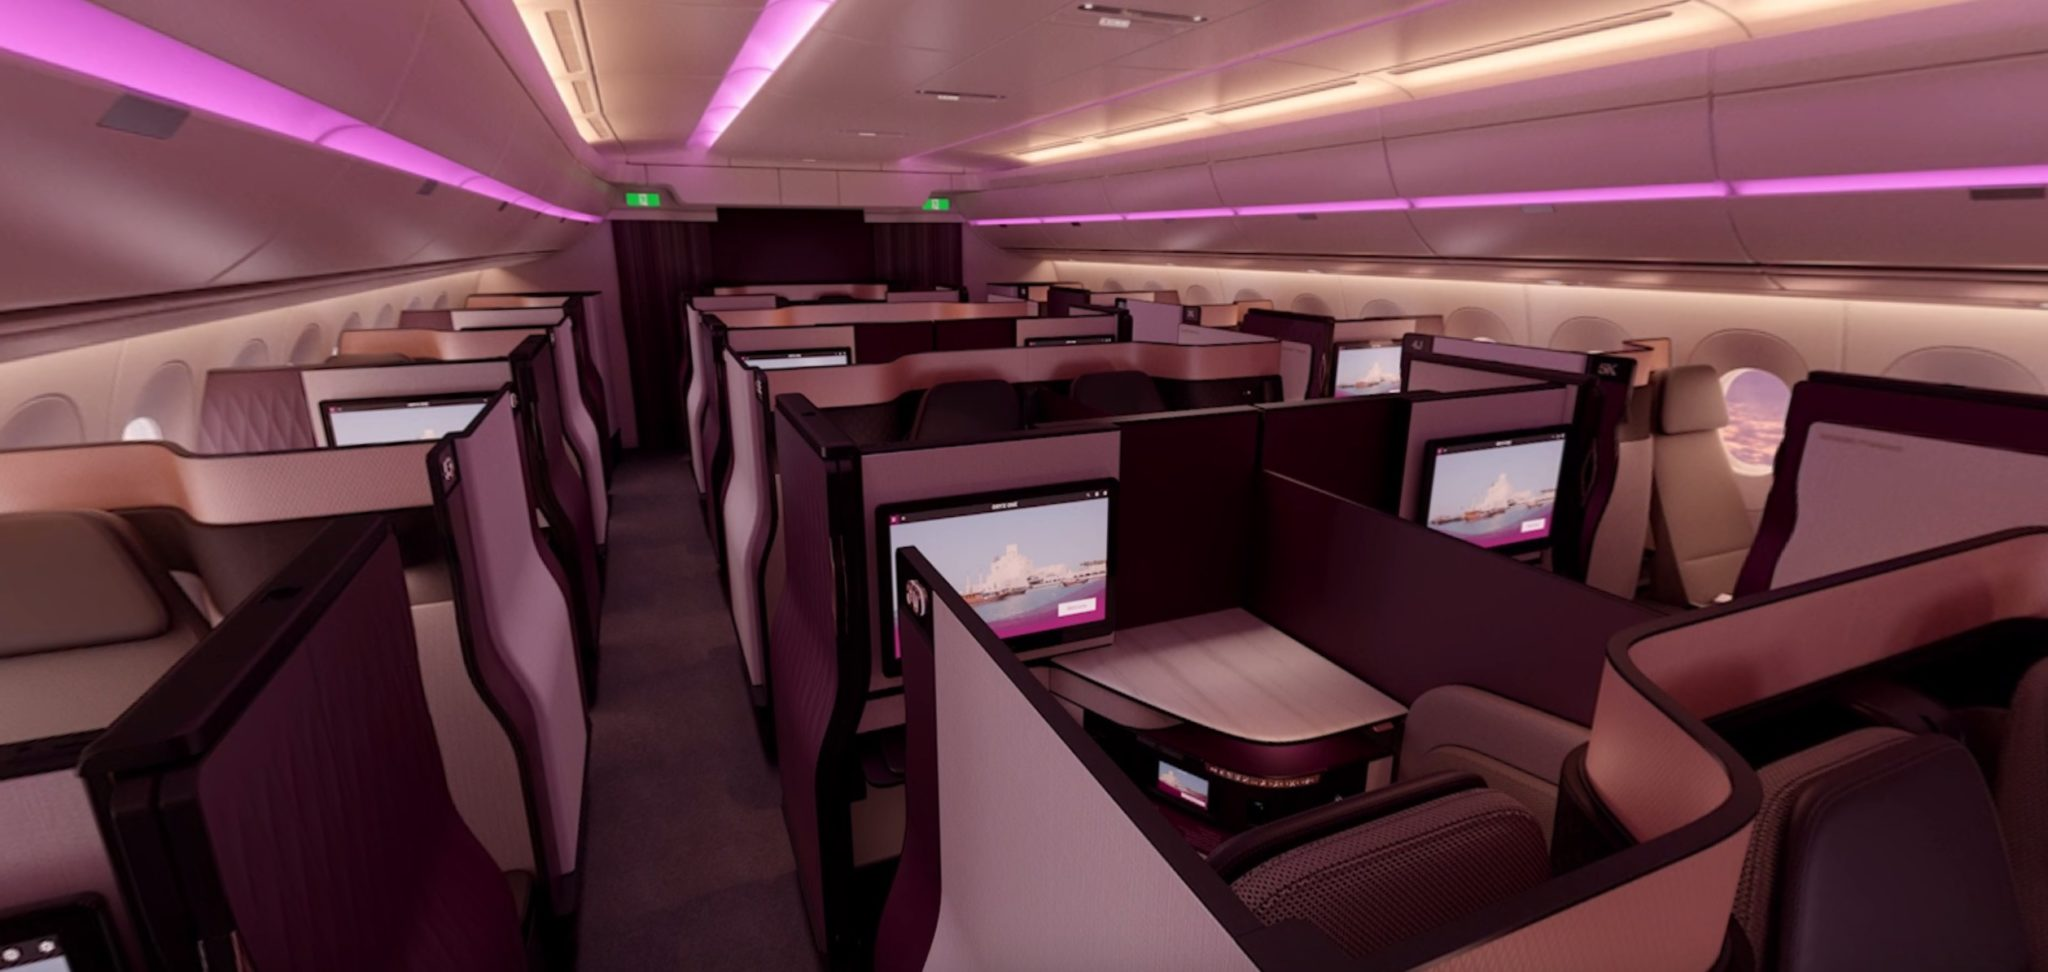 qatar fires across etihad 39 s bows with four person qsuite runway girlrunway girl. Black Bedroom Furniture Sets. Home Design Ideas